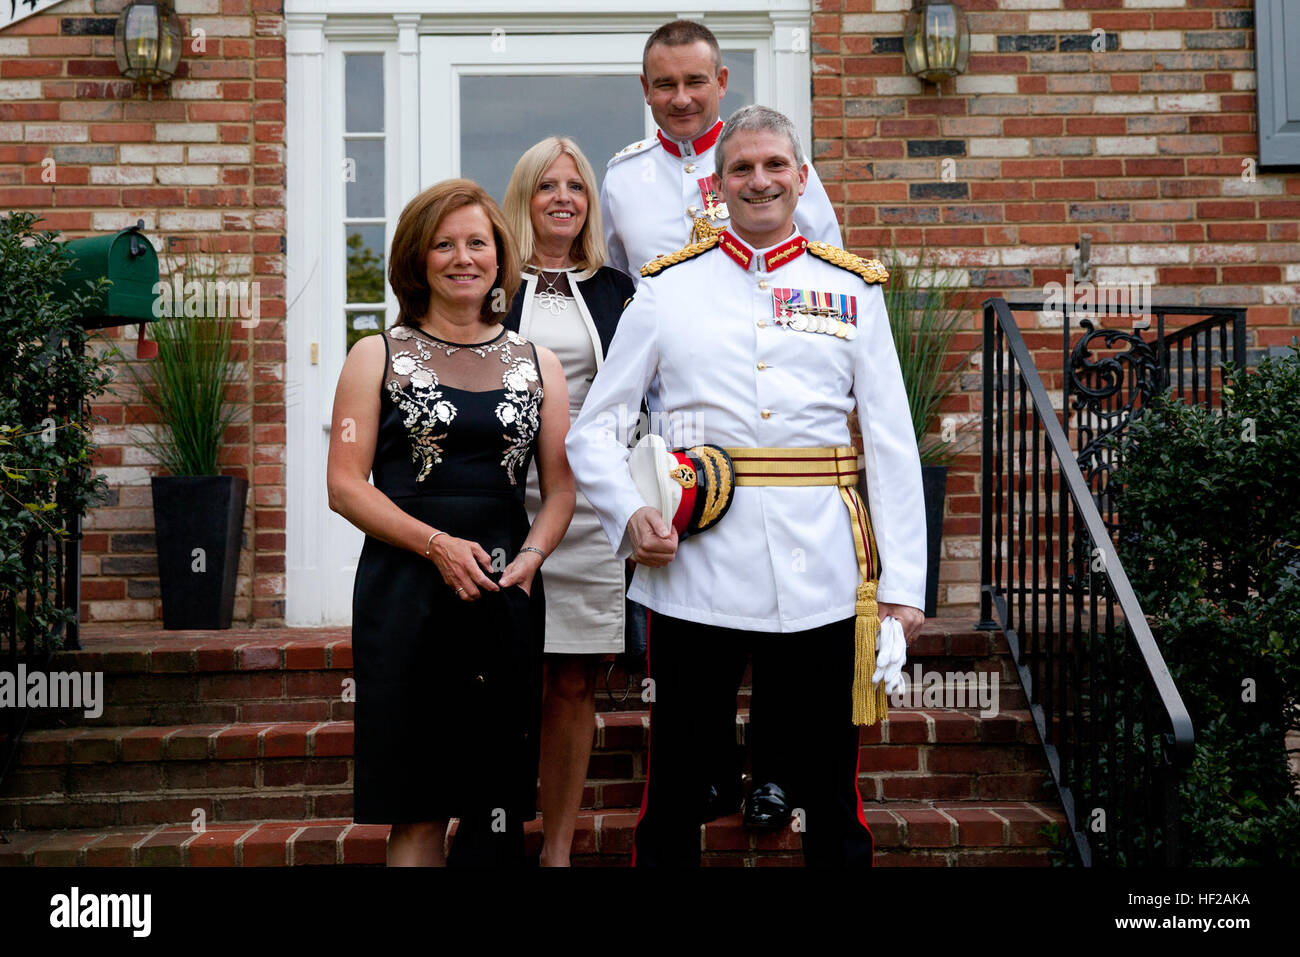 From left, Sue Smith; Helen Lister; British Royal Marine Attache Col. Al Lister; and Commandant General of the British Stock Photo